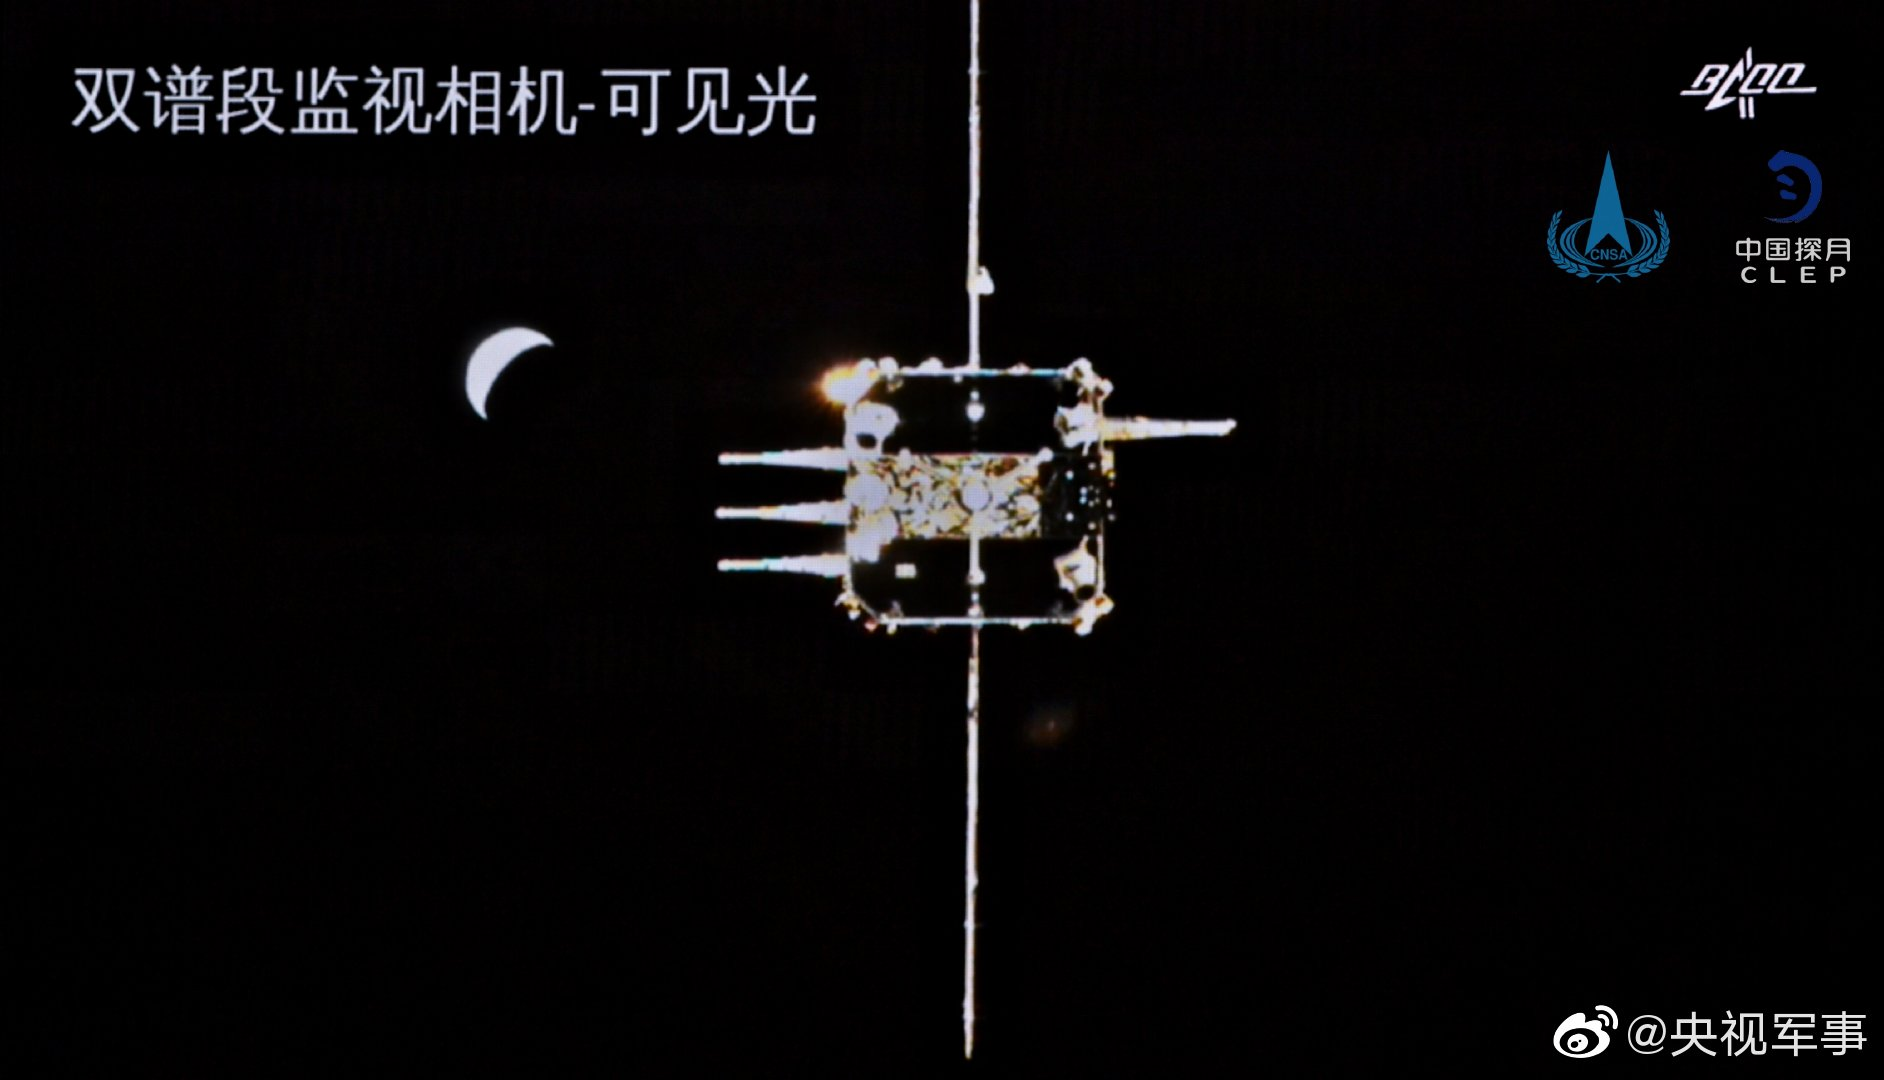 Chang'e 5 ascent module approaches the Earth-return vehicle in lunar orbit